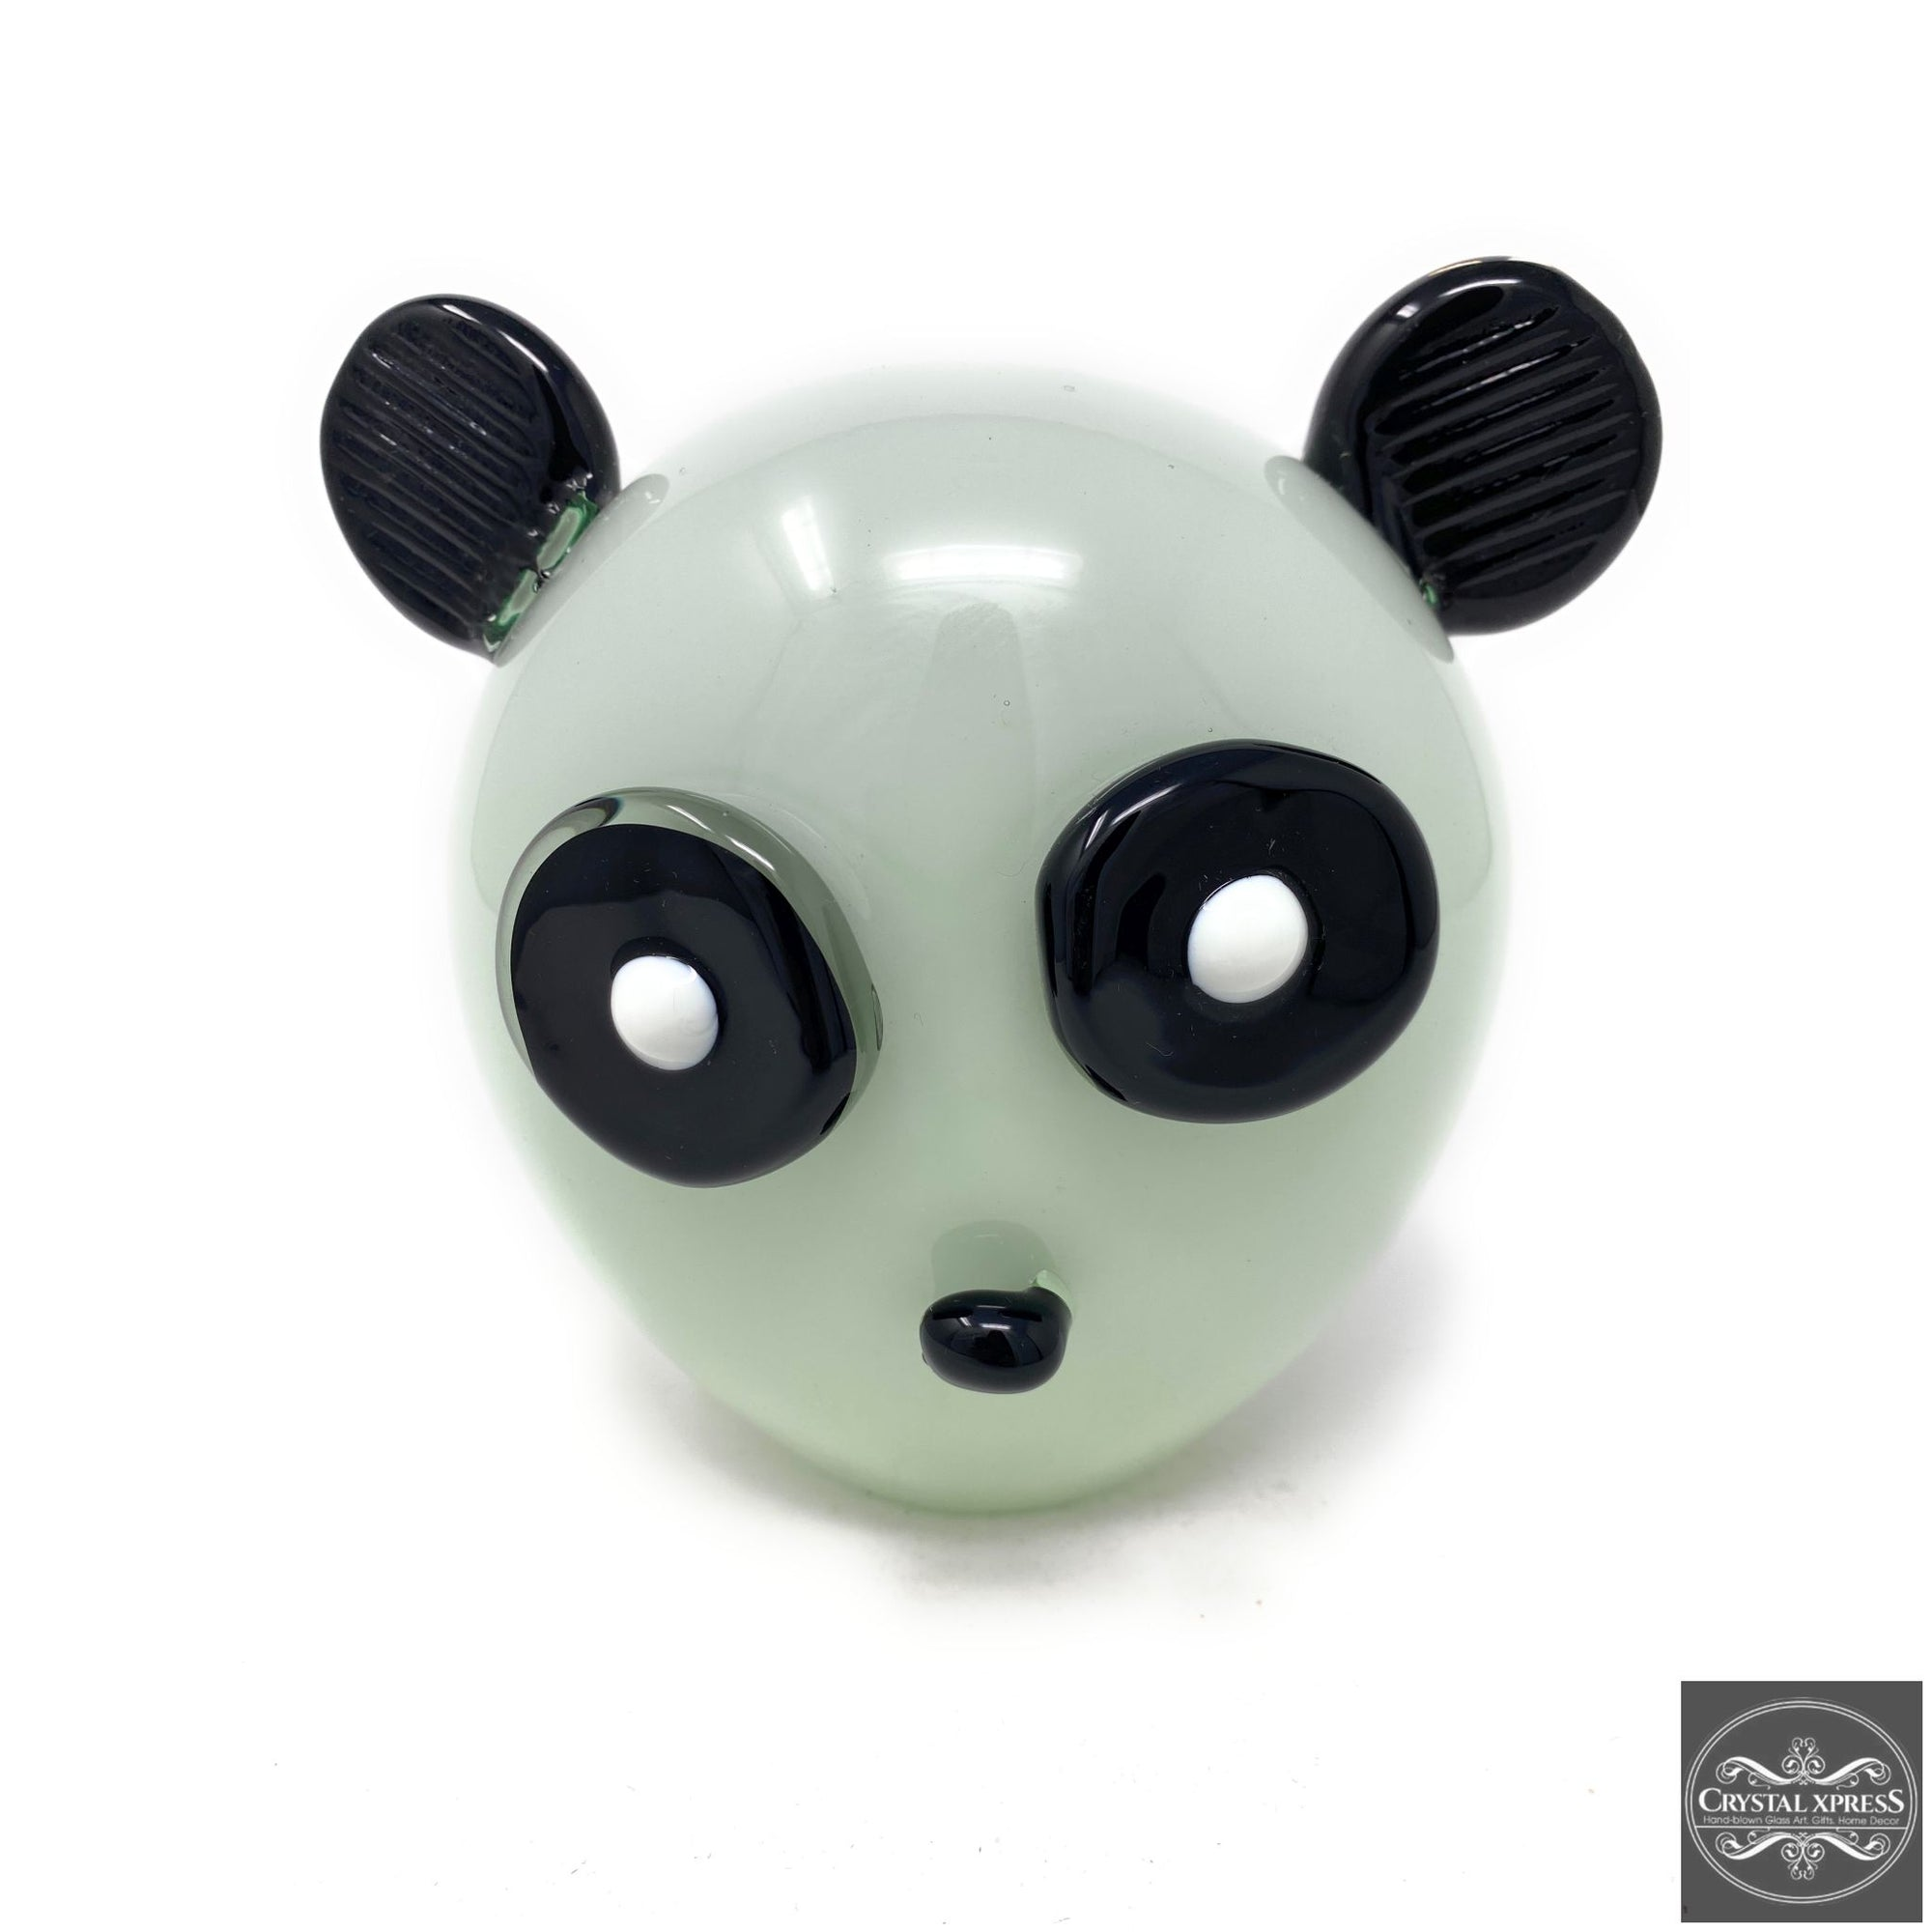 "New 7"" Hand Blown Glass Panda Head Sculpture ArtCrystal Xpress"